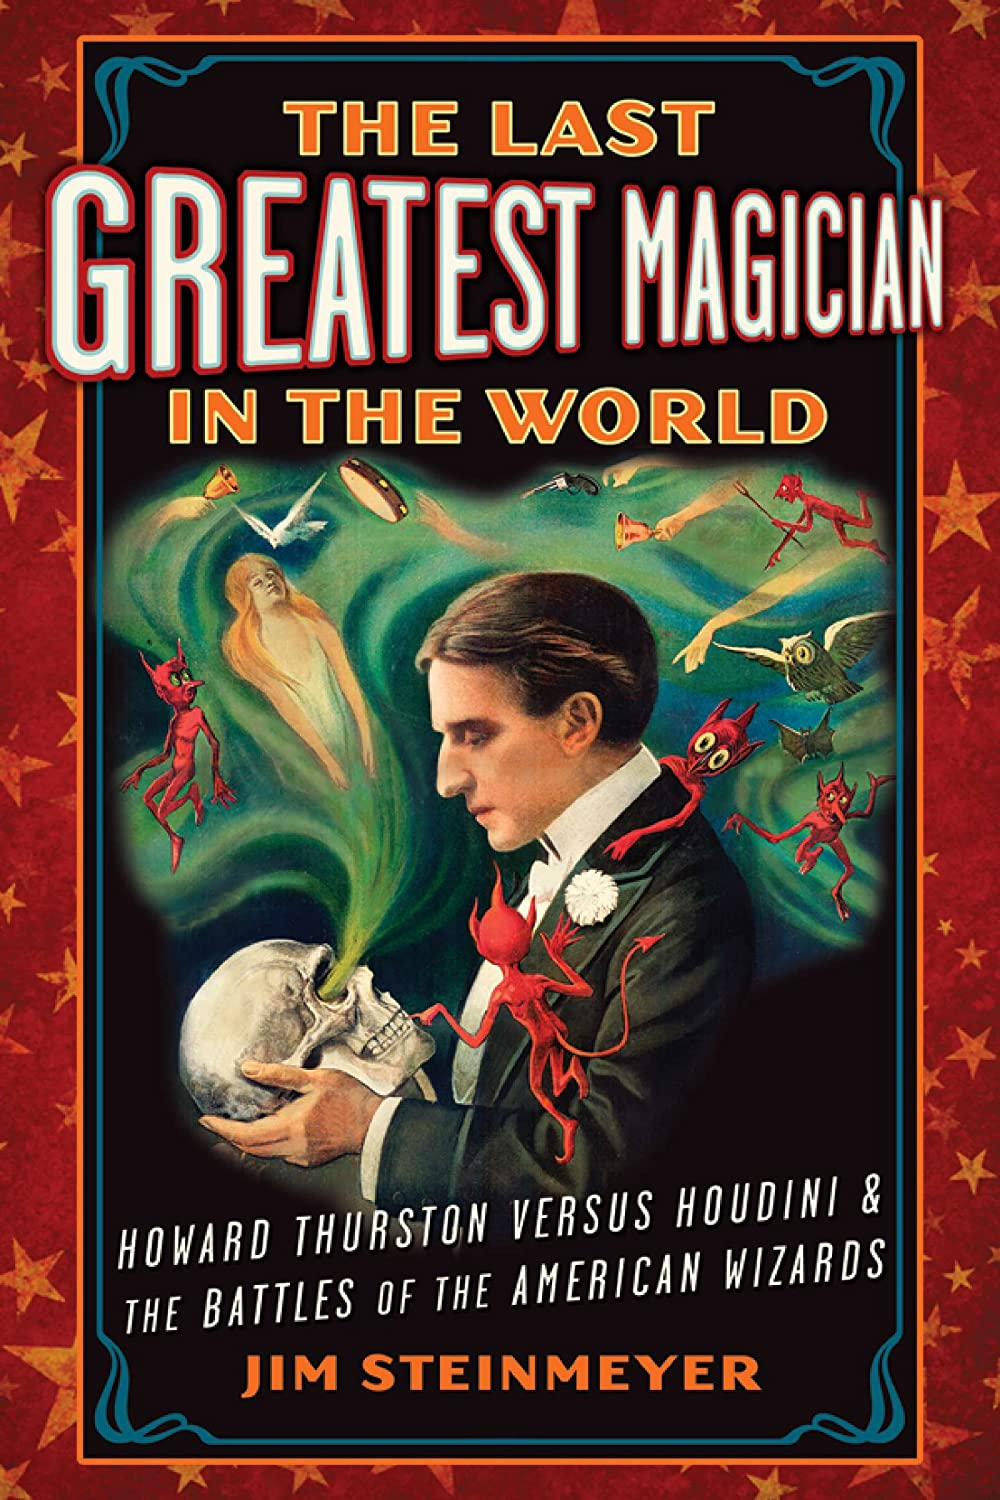 inthelast_the last greatest magician in the world: howard thurston versus